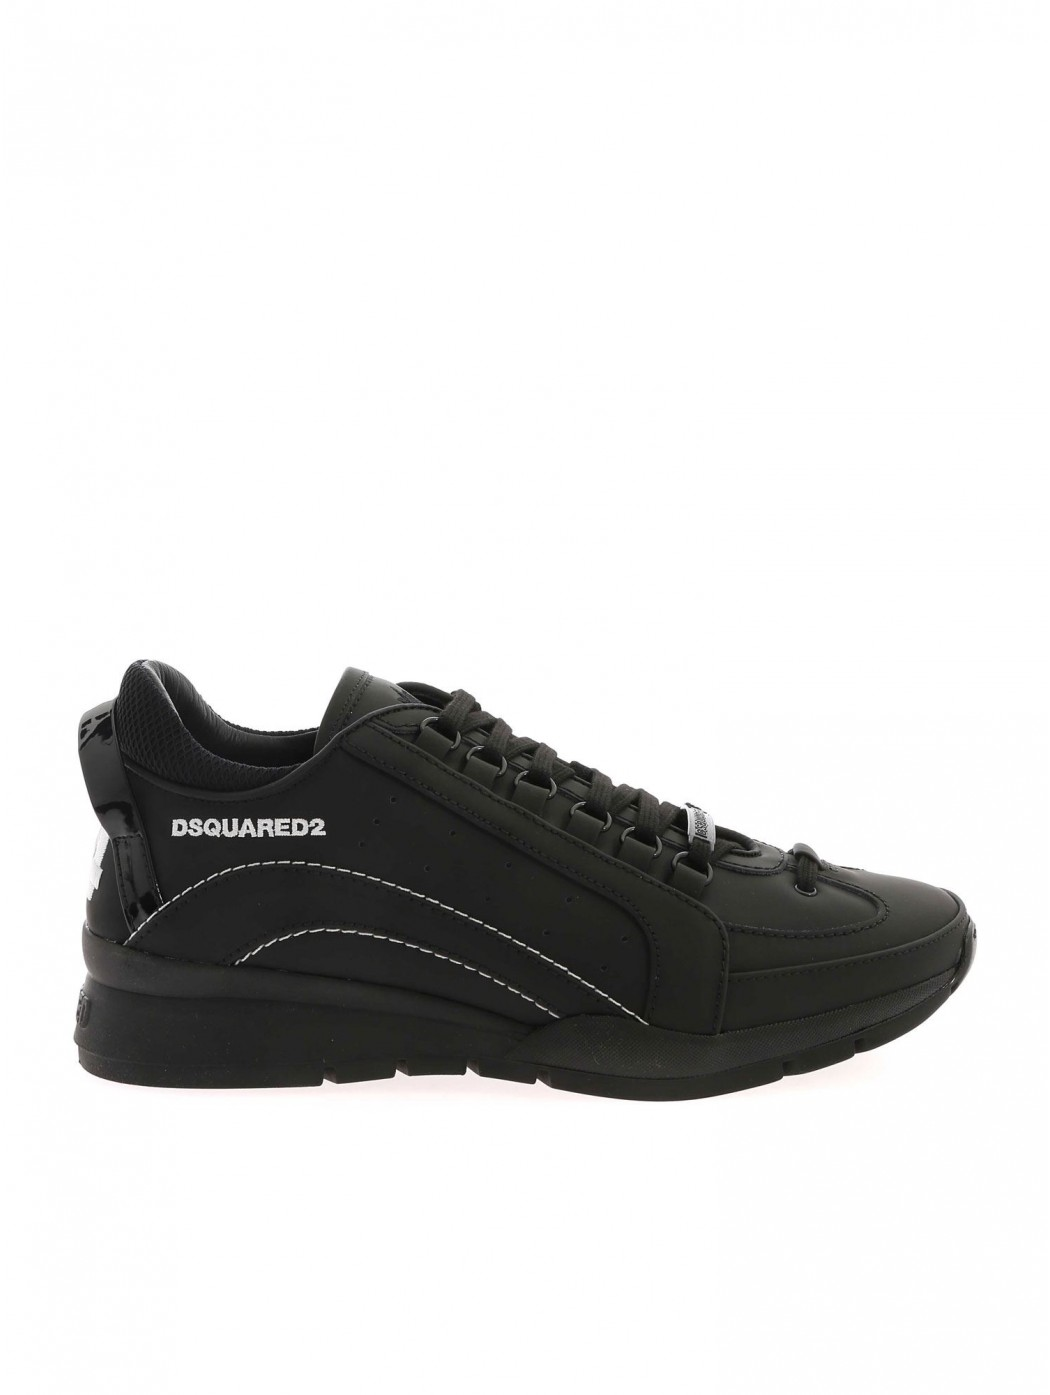 SNEAKER DSQUARED2 SNM050530800001 M063